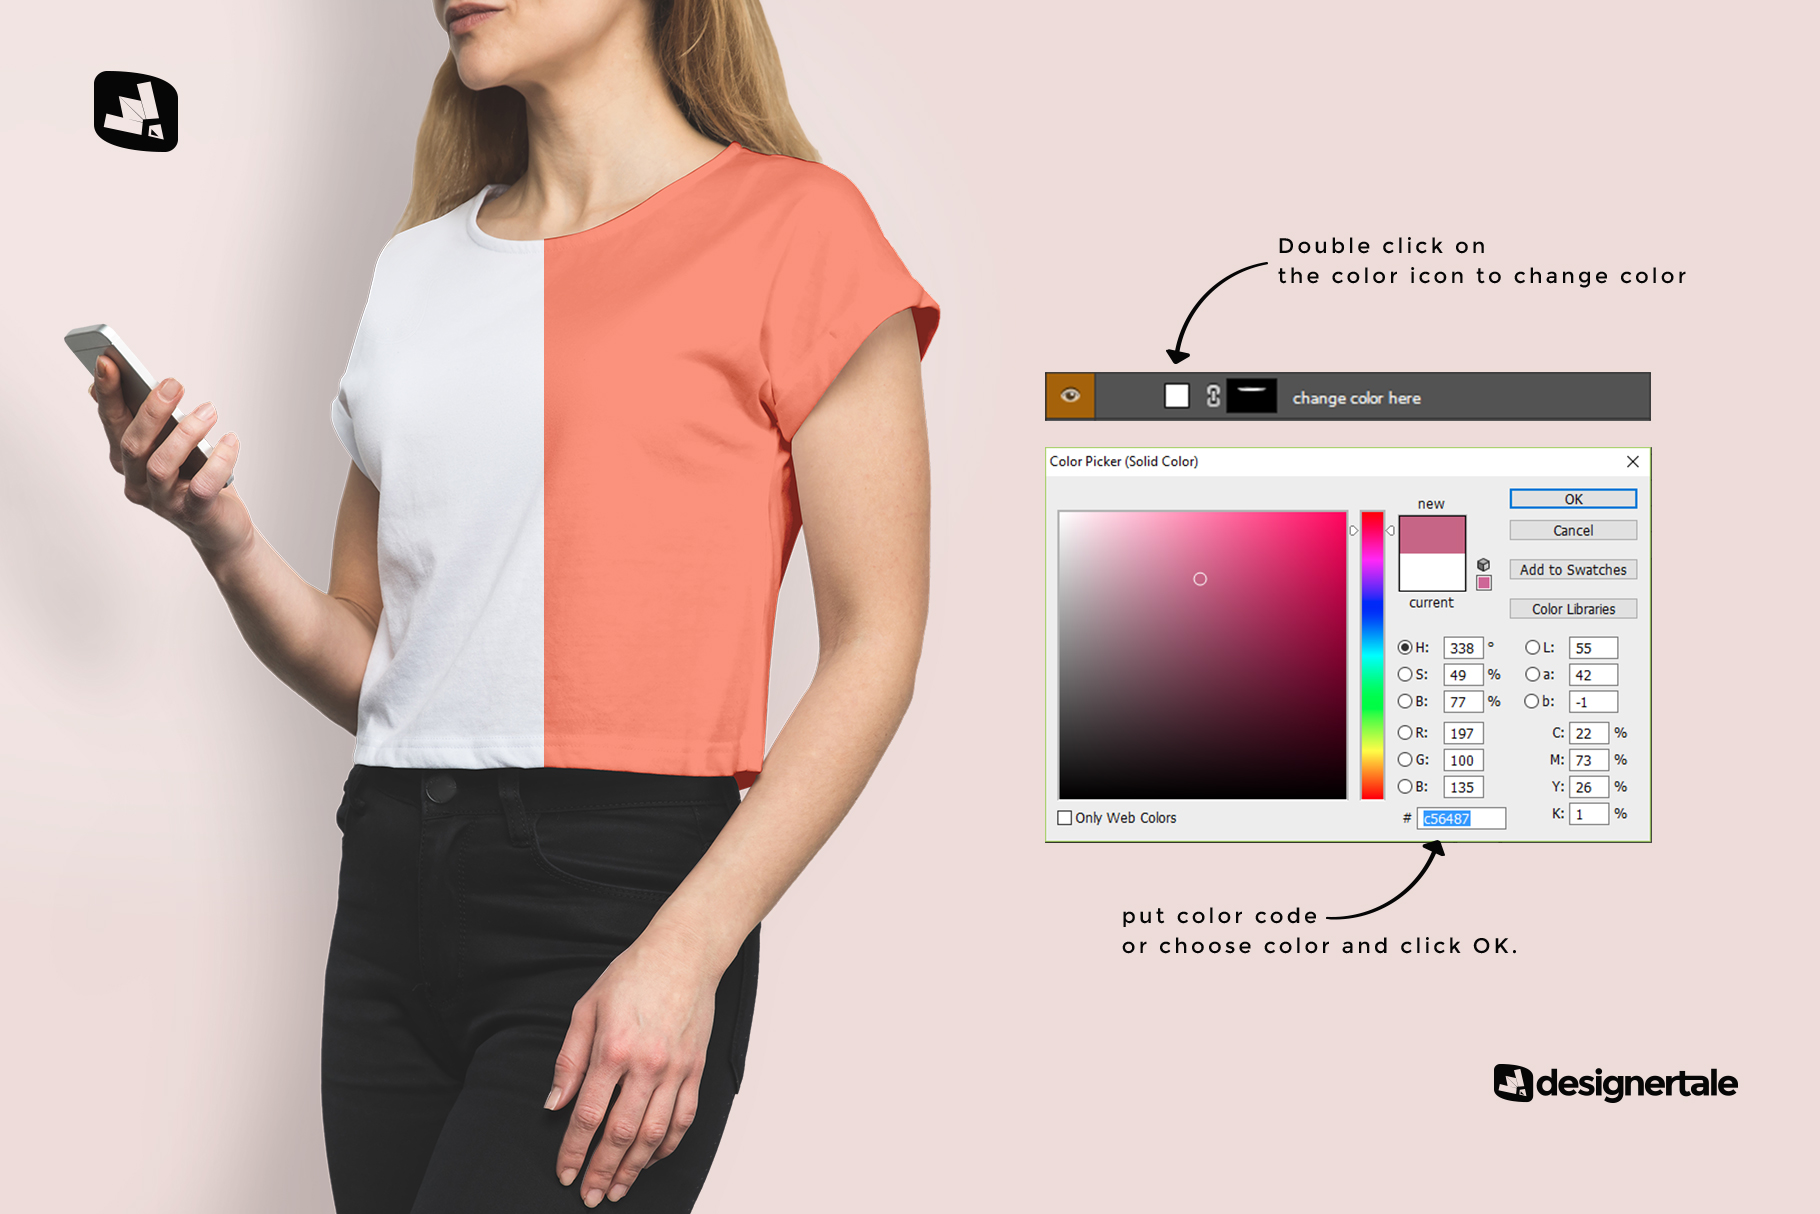 how to change color of the women's cropped tshirt mockup